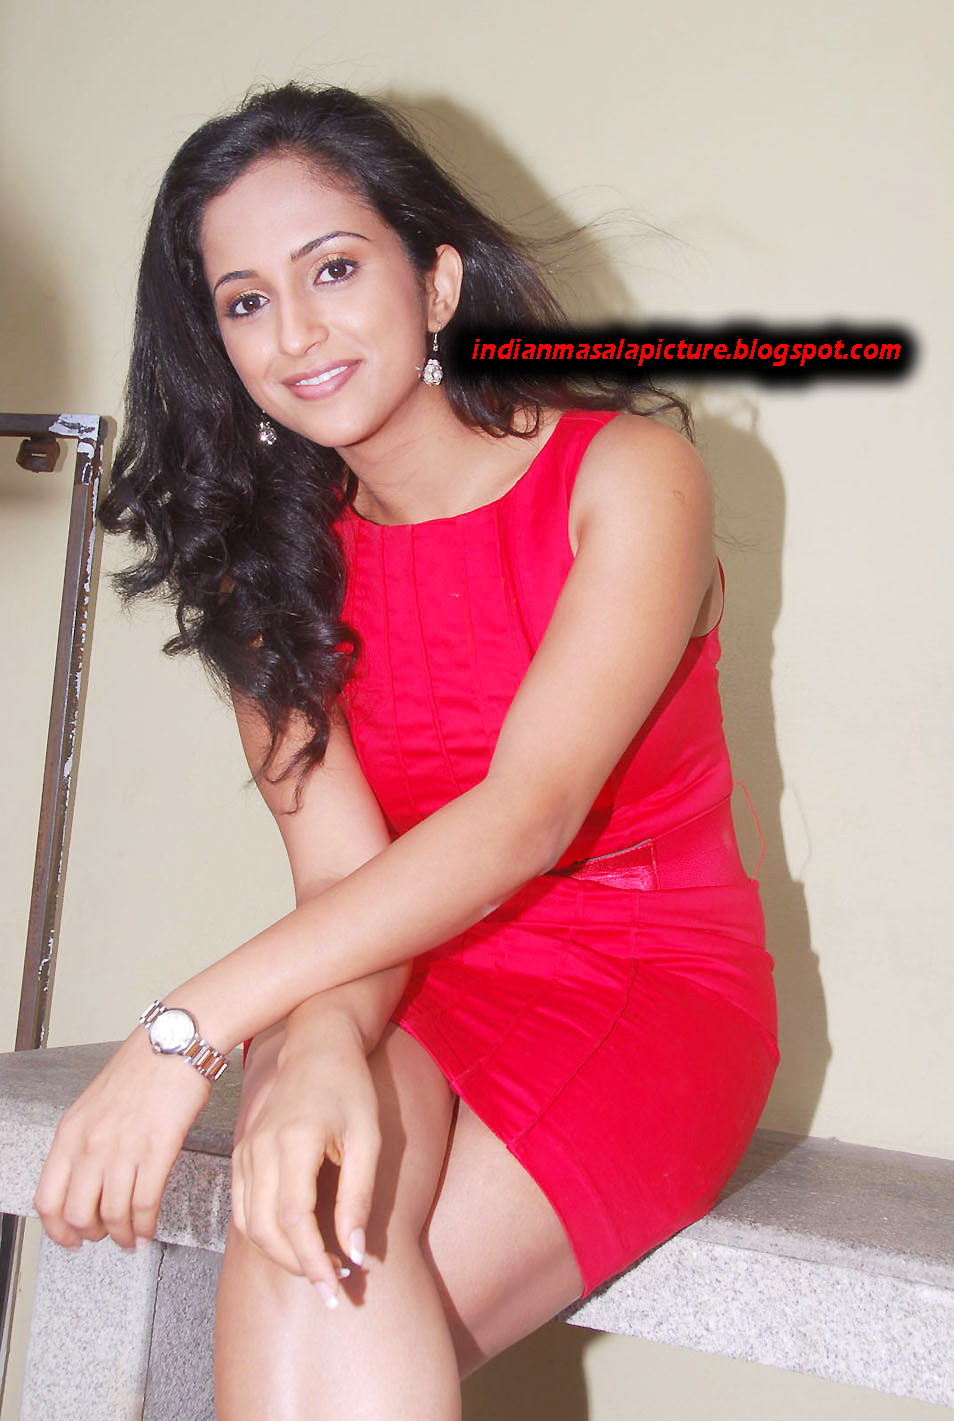 Neha Aunty Indian Masala Picture 280 x 400 - 44kB